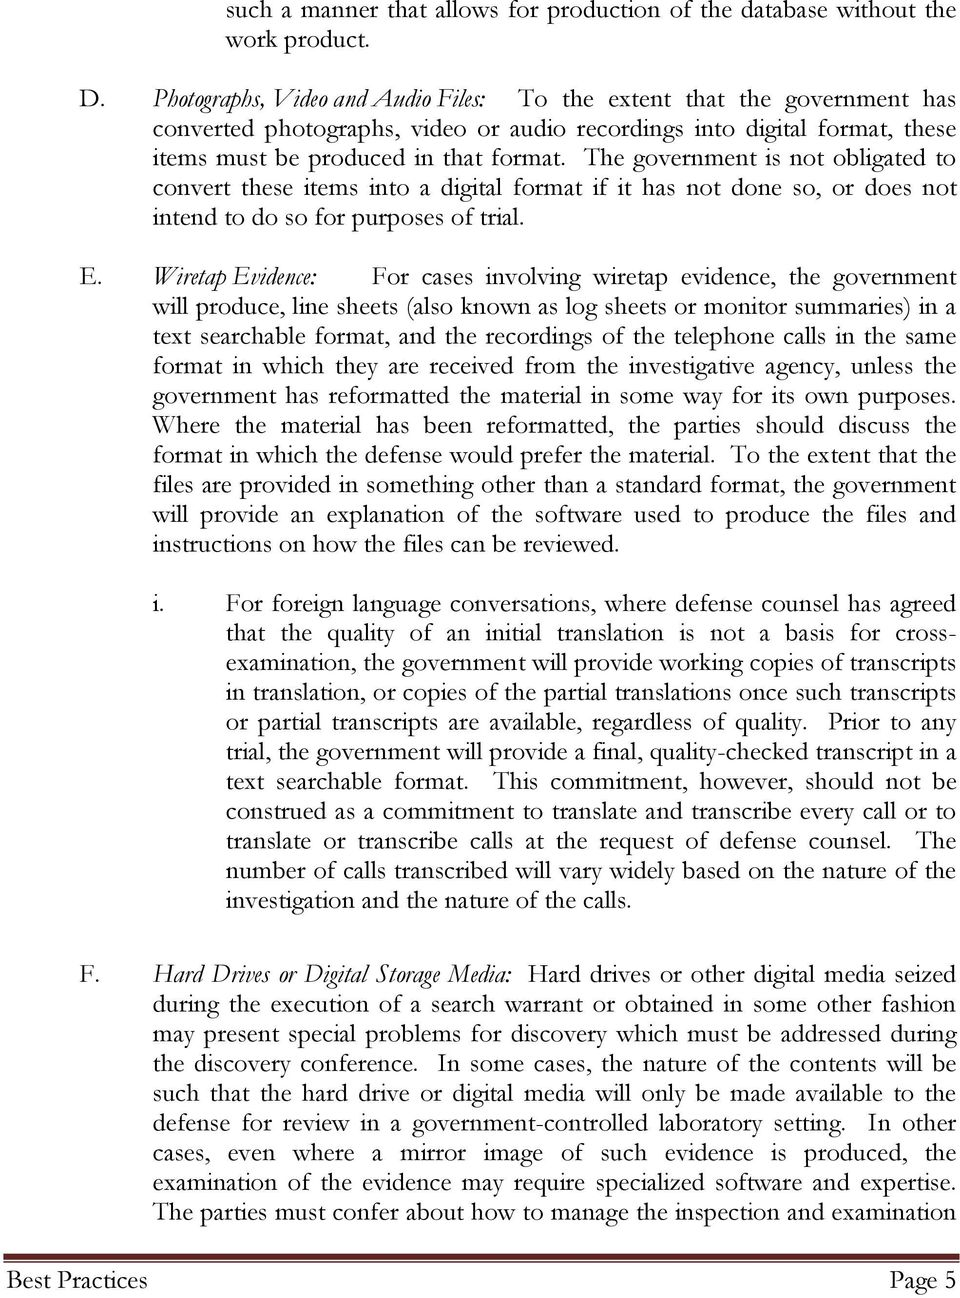 The government is not obligated to convert these items into a digital format if it has not done so, or does not intend to do so for purposes of trial. E.